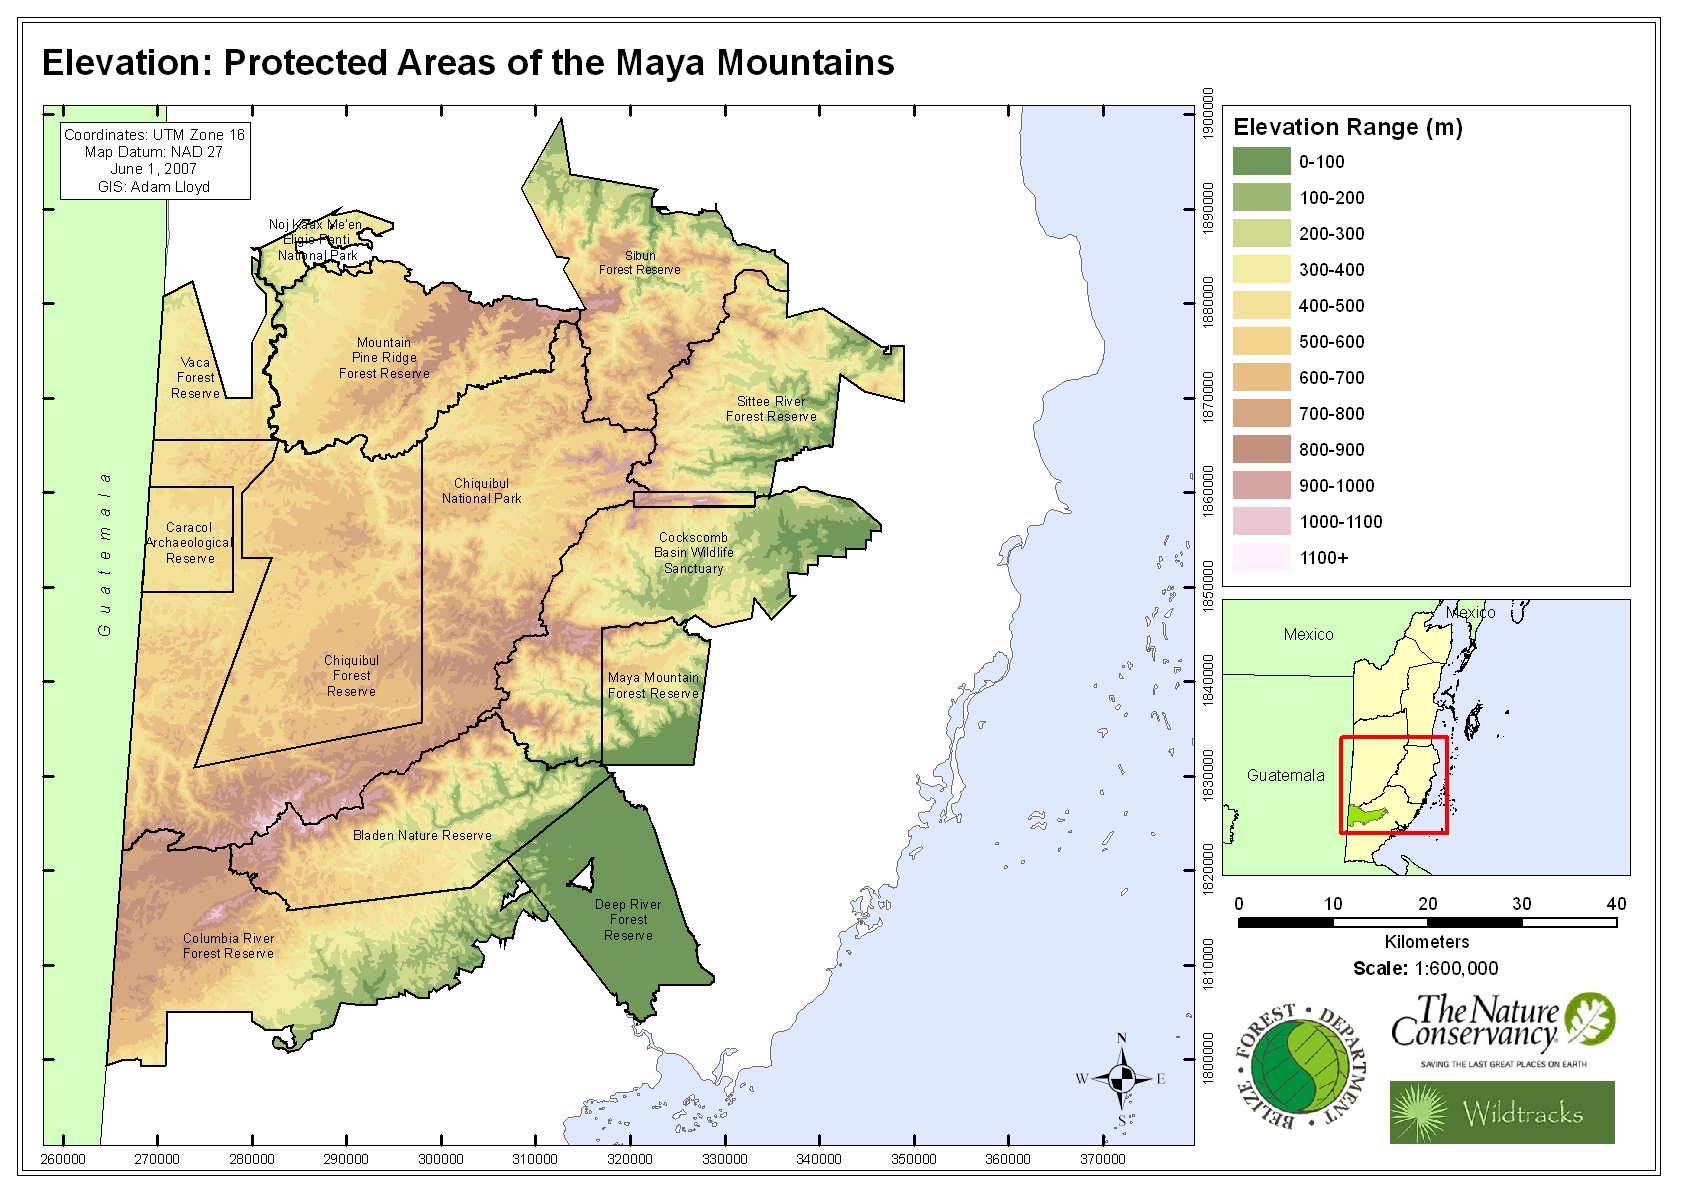 Elevation: Protected Areas of the Maya Mountains